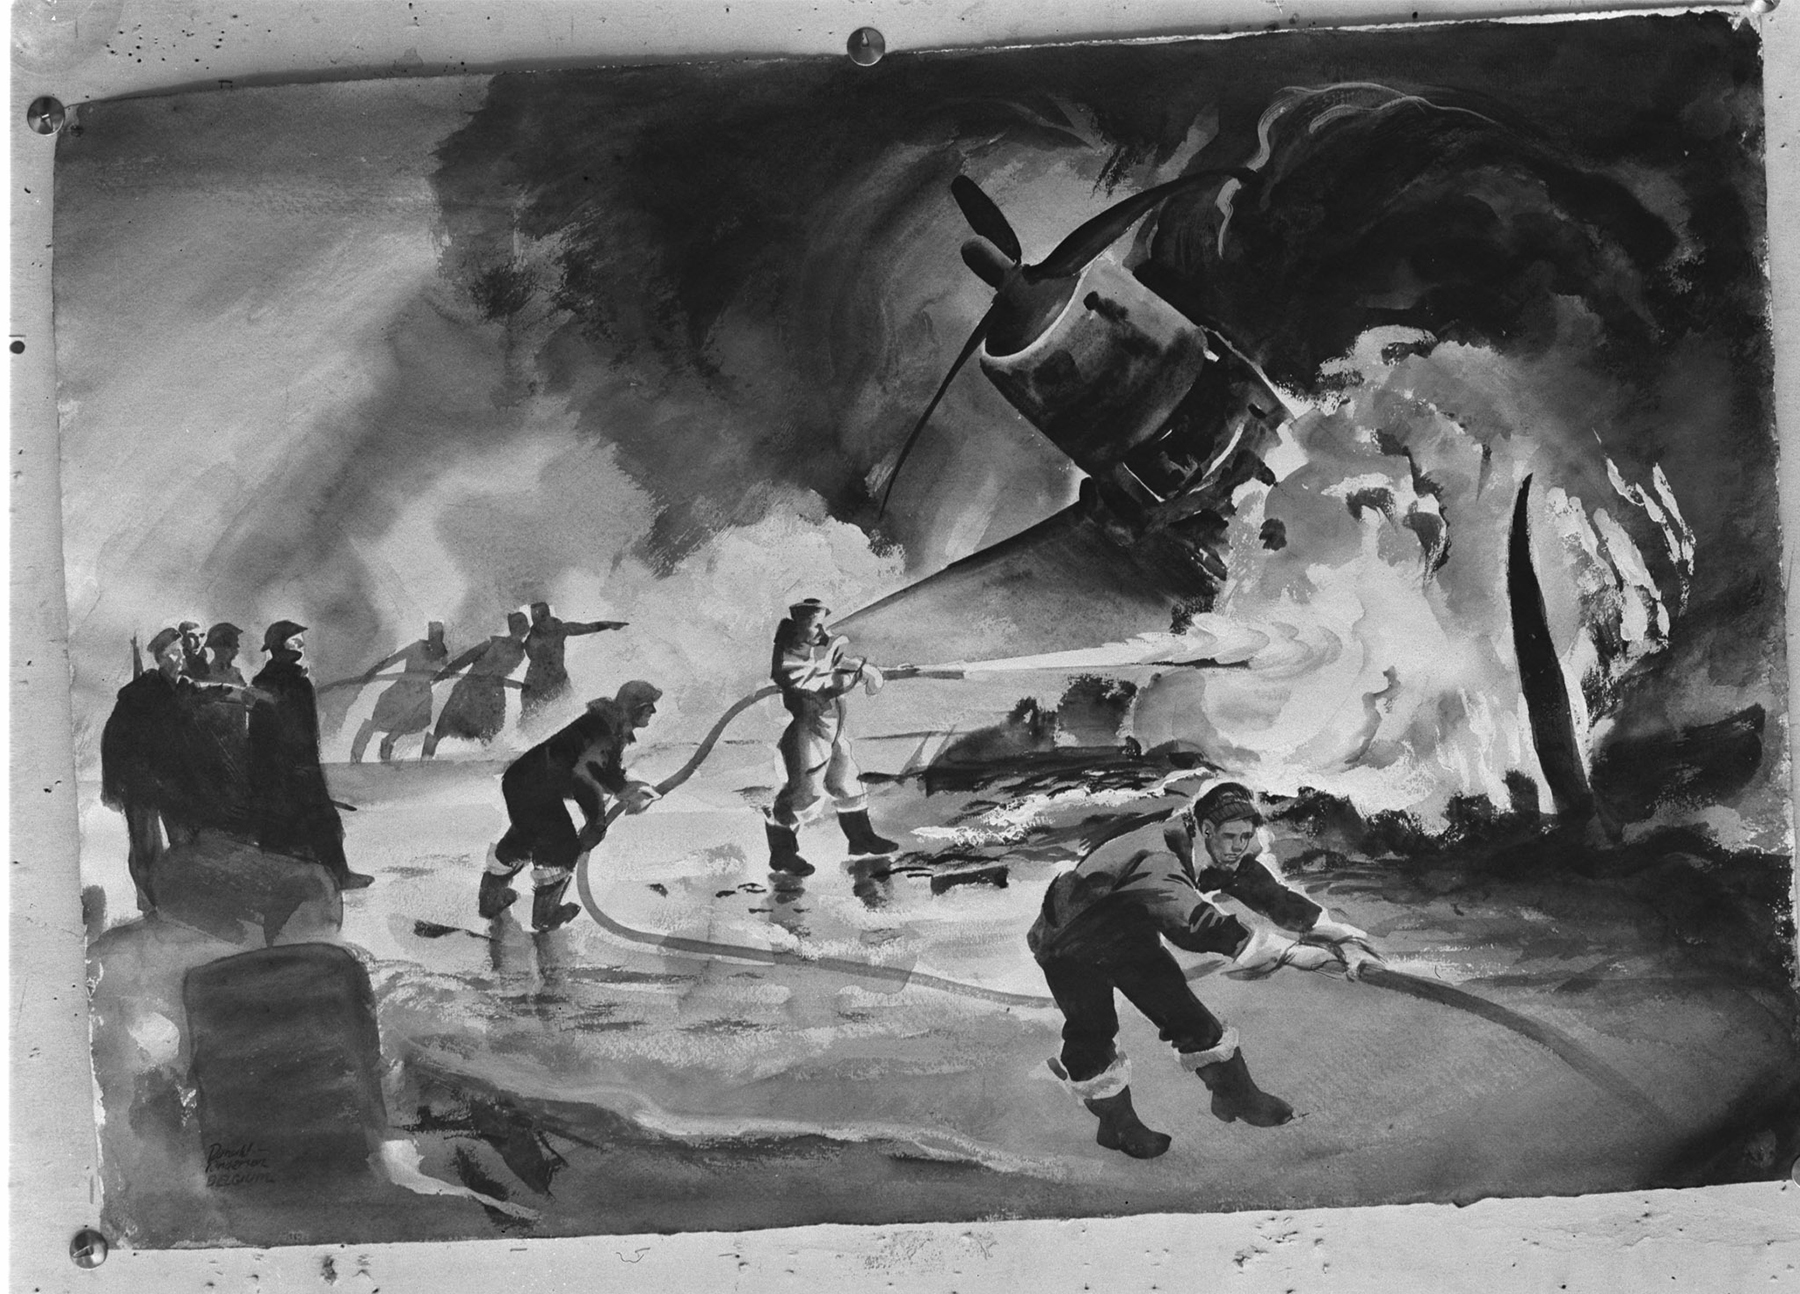 The RCAF's Flying Officer Donald Anderson dipped a watery brush into ink on New Year's morning 1945 and immortalized groundcrew fighting the fire of a crashed aircraft at No. 1 airfield in Belgium. IMAGE: DND Archives, PL-47041